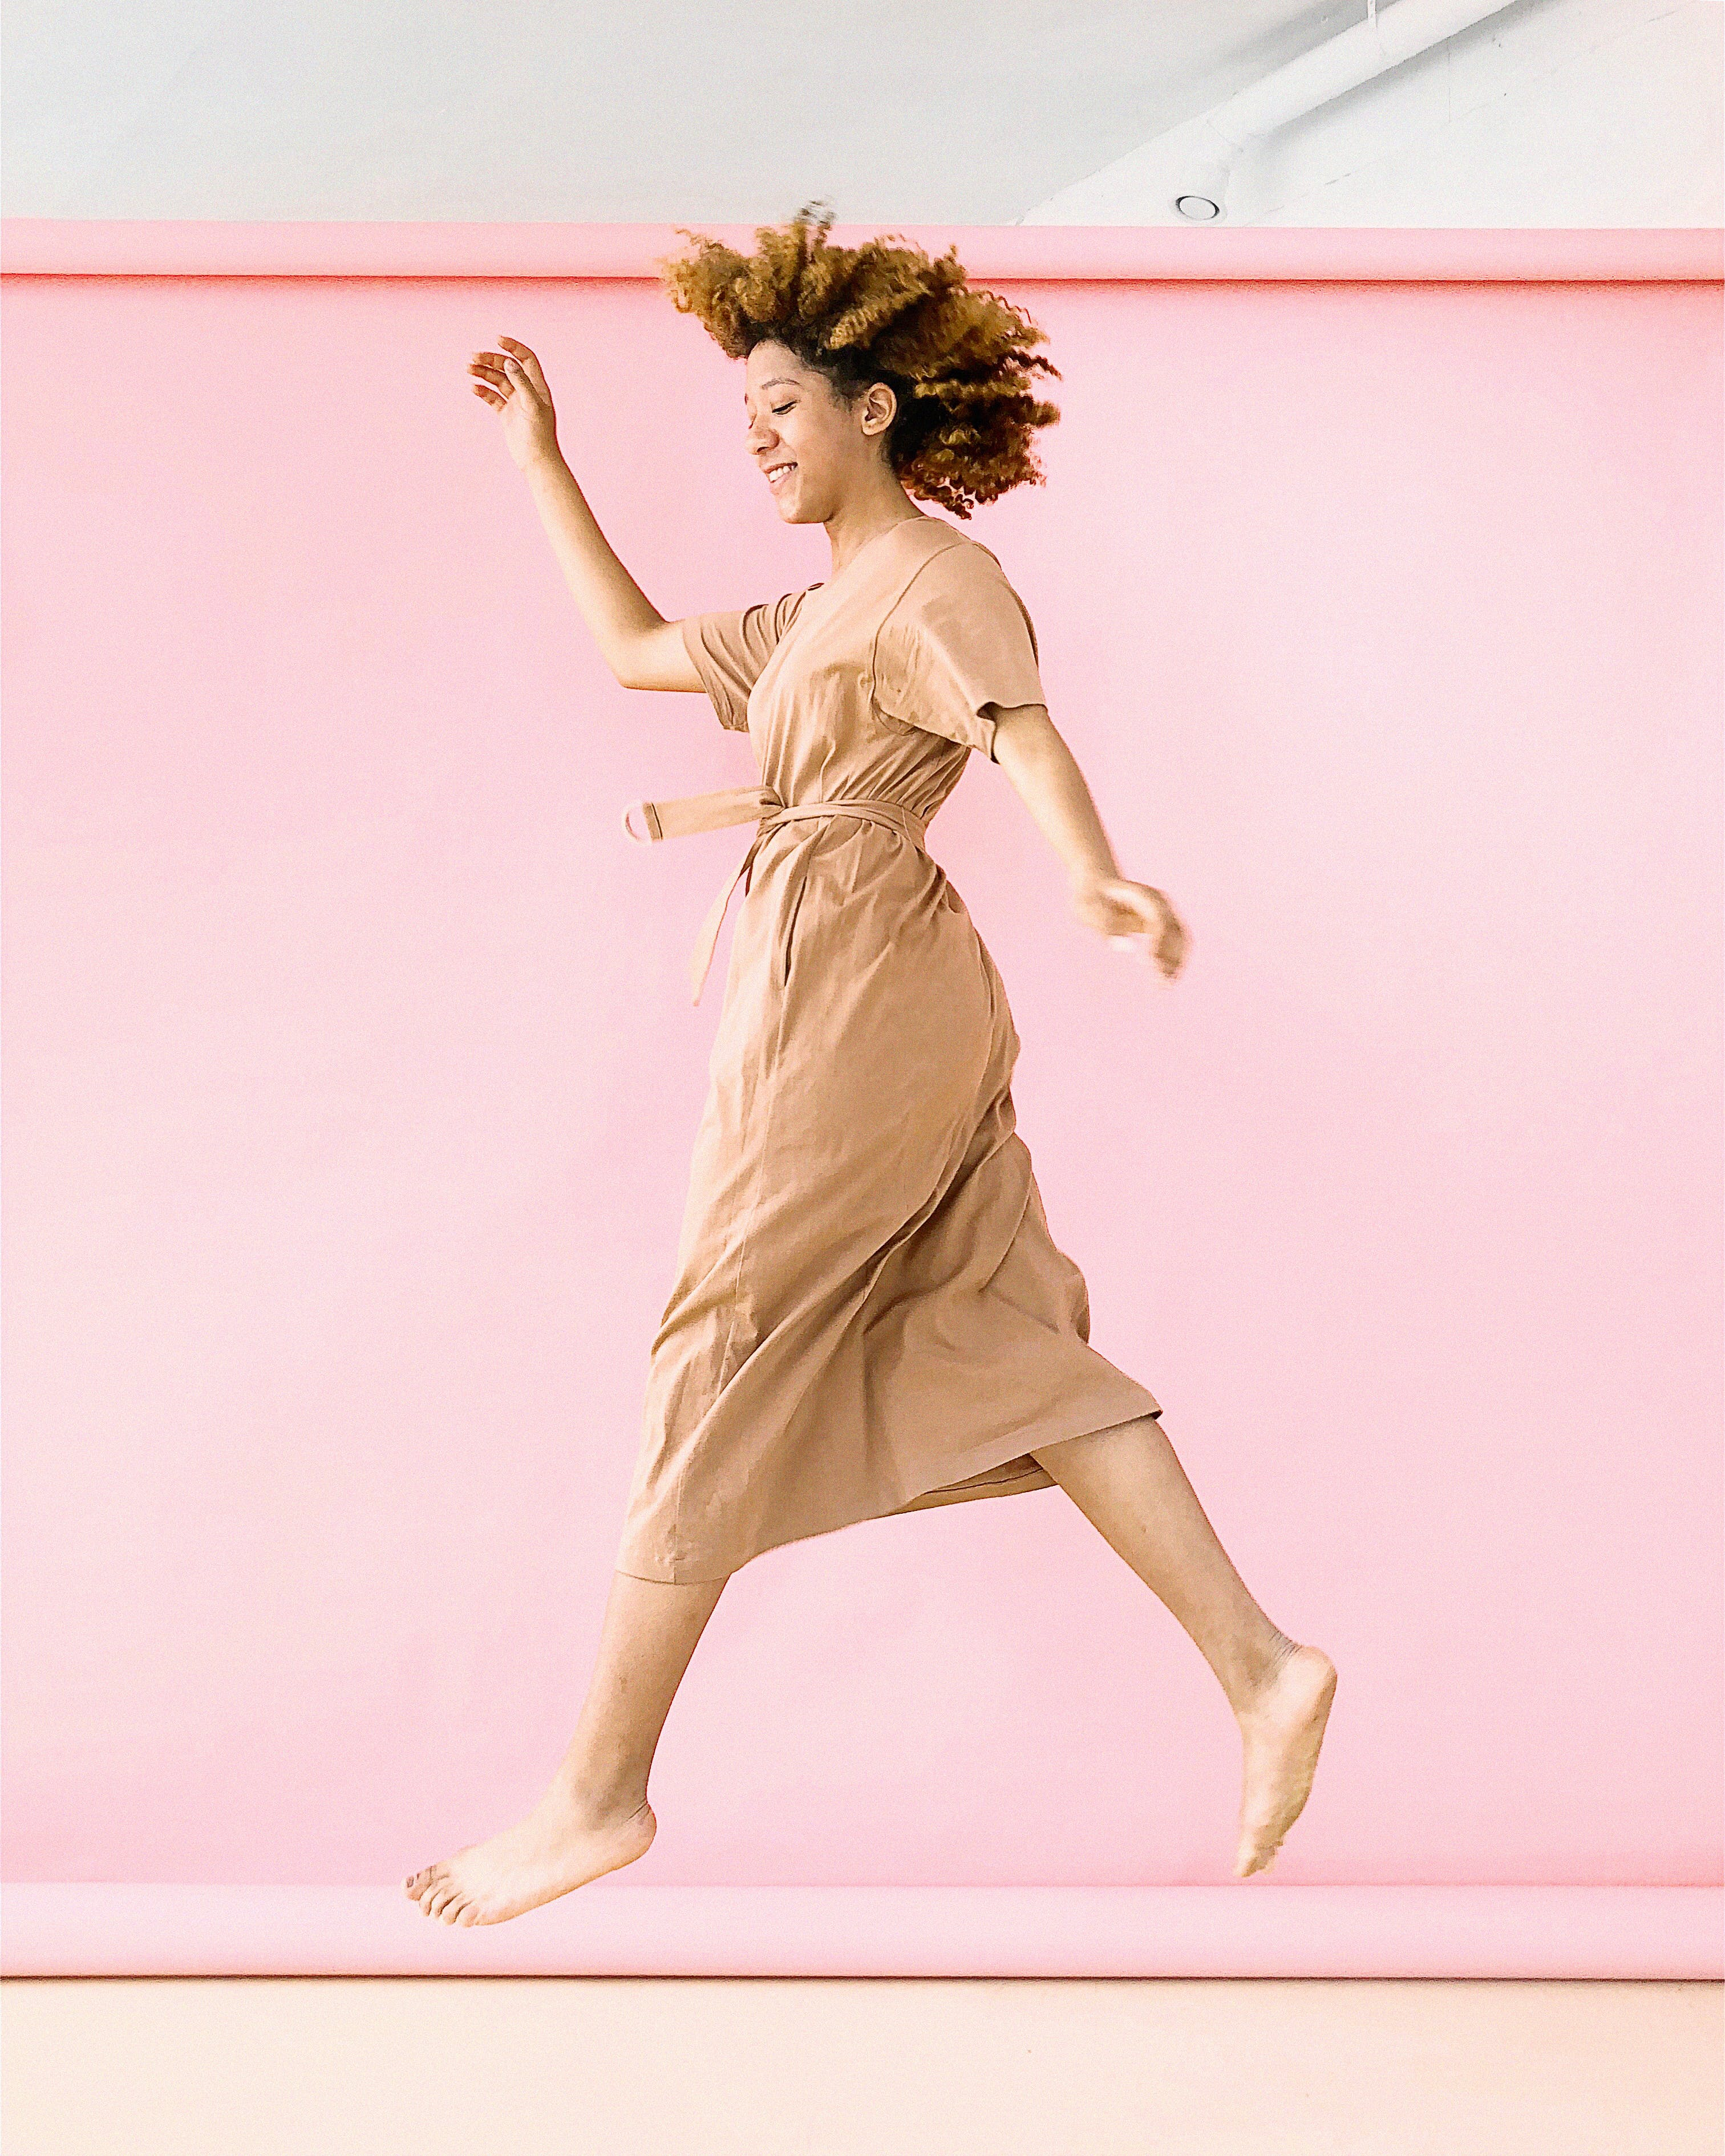 Woman Wearing Brown Dress Jump Near Pink Wall